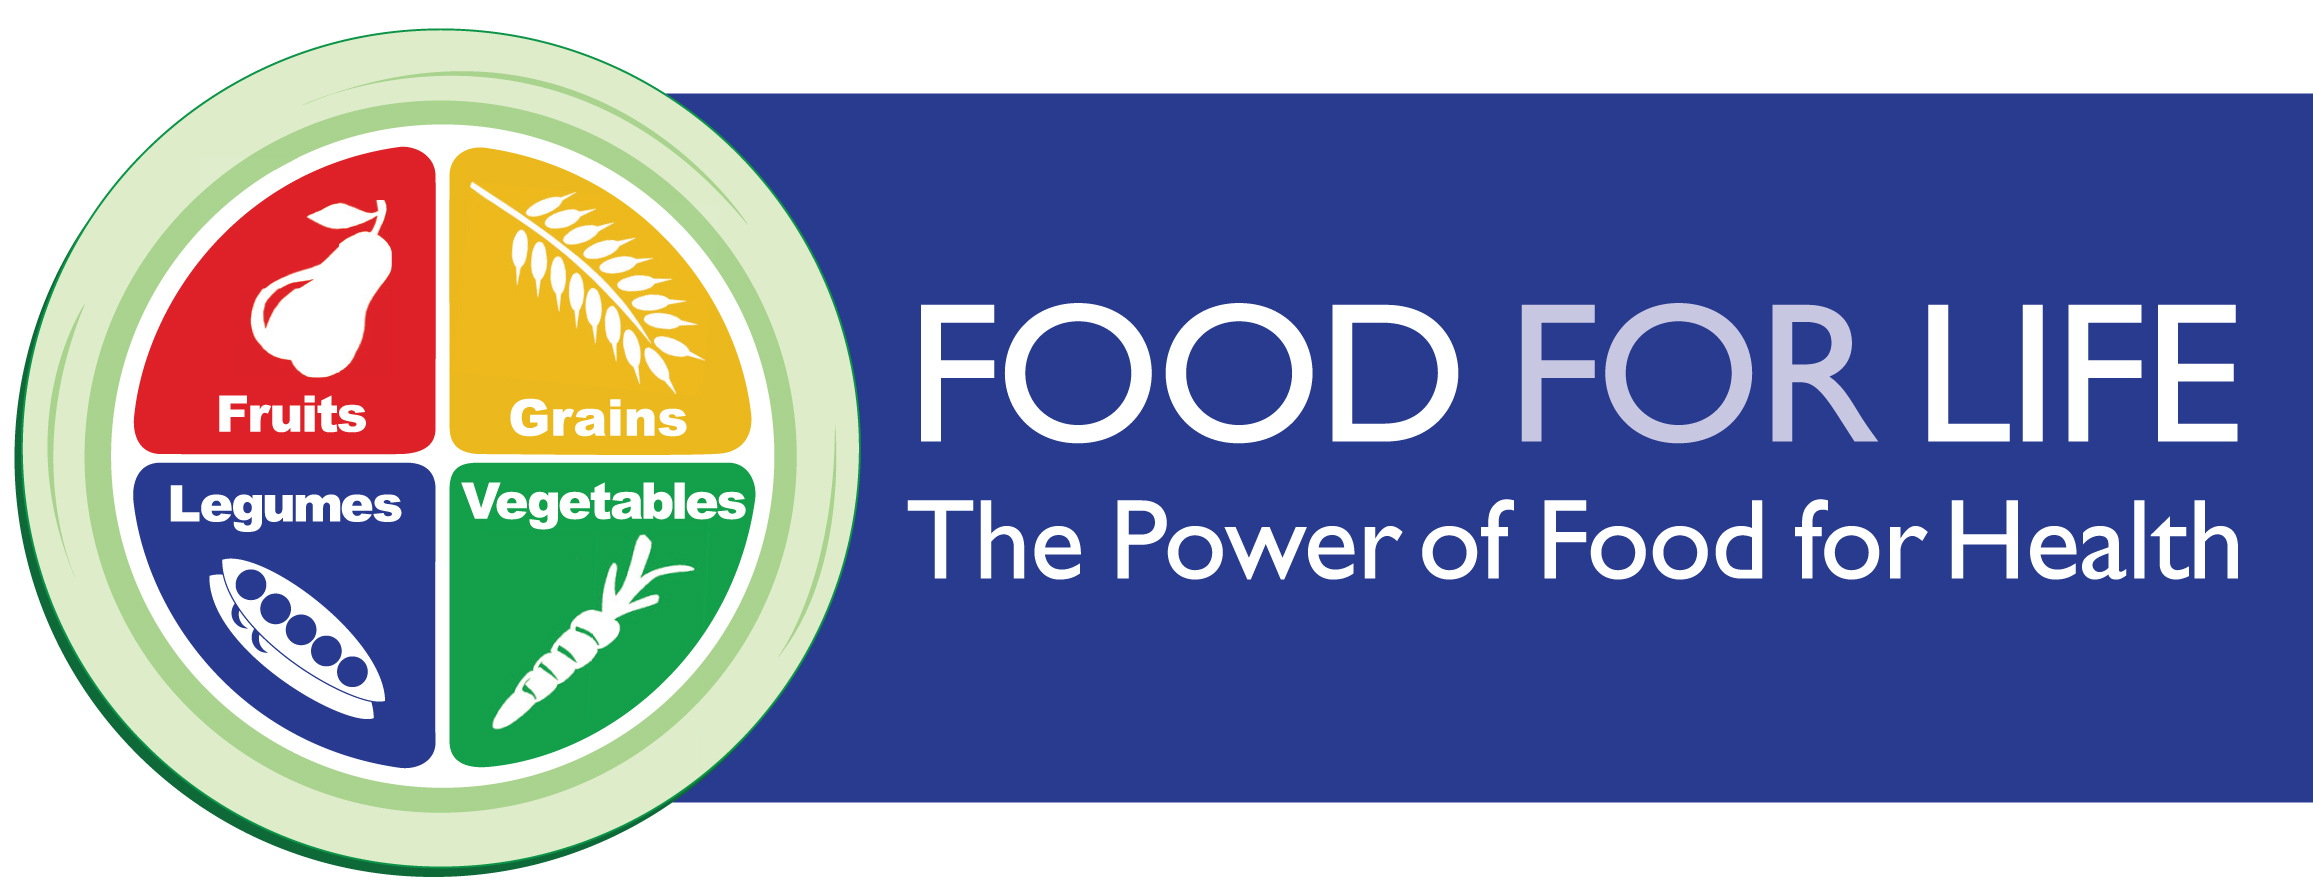 Food for Life The Power of Food